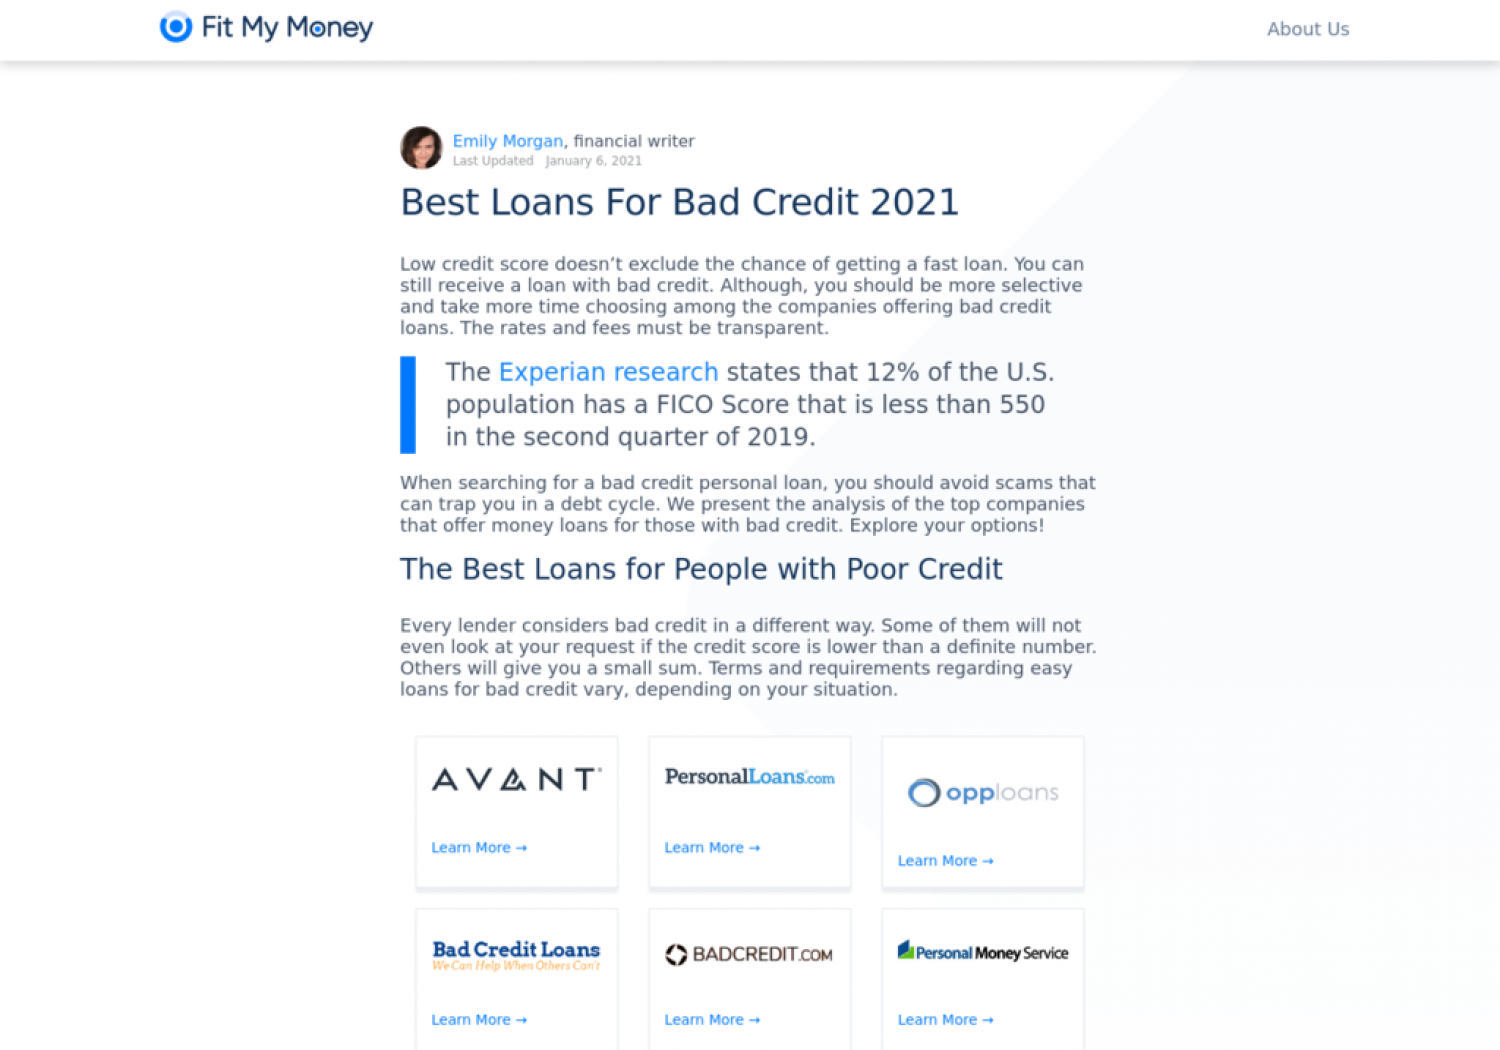 Best Loans For Bad Credit 2021 Infographic